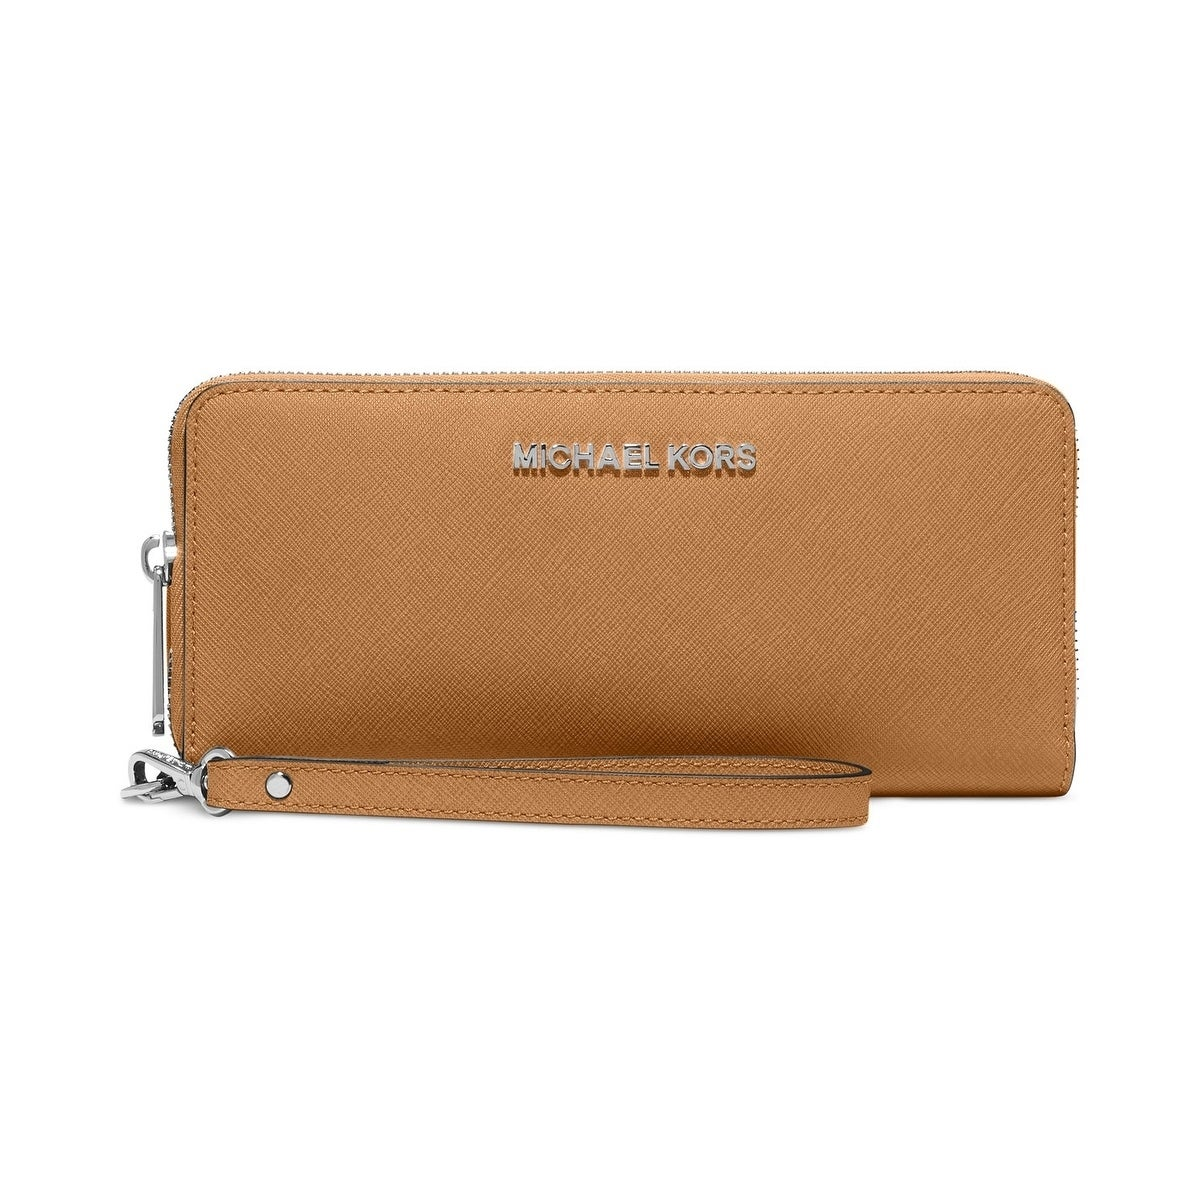 21a3ca93763a Shop MICHAEL KORS Jet Set Travel Continental Saffiano Wallet ACORN - On Sale  - Free Shipping Today - Overstock - 17859502